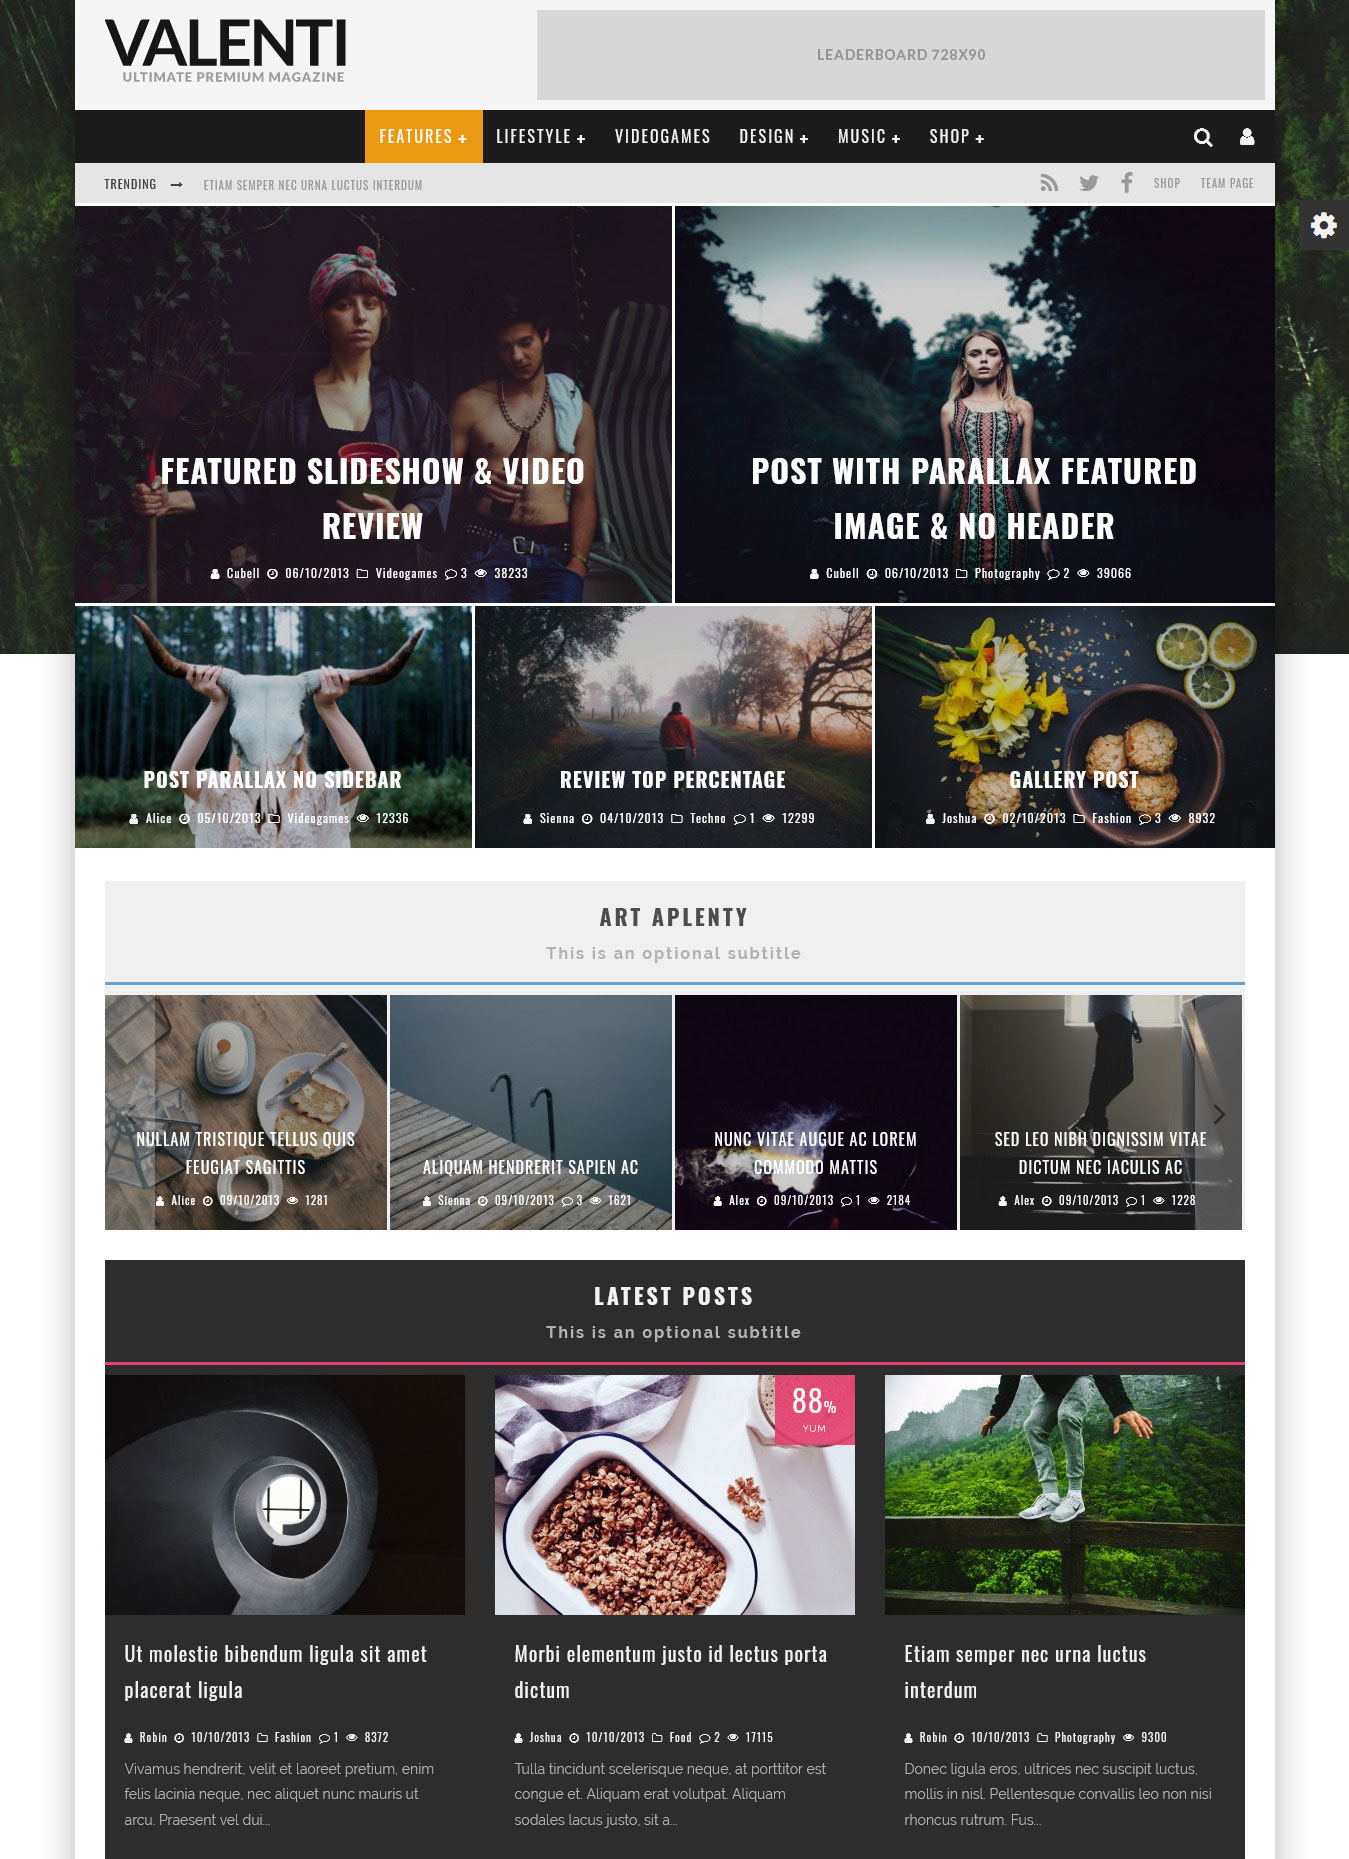 Valenti---Premium-Wordpress-Magazine-Review-Theme